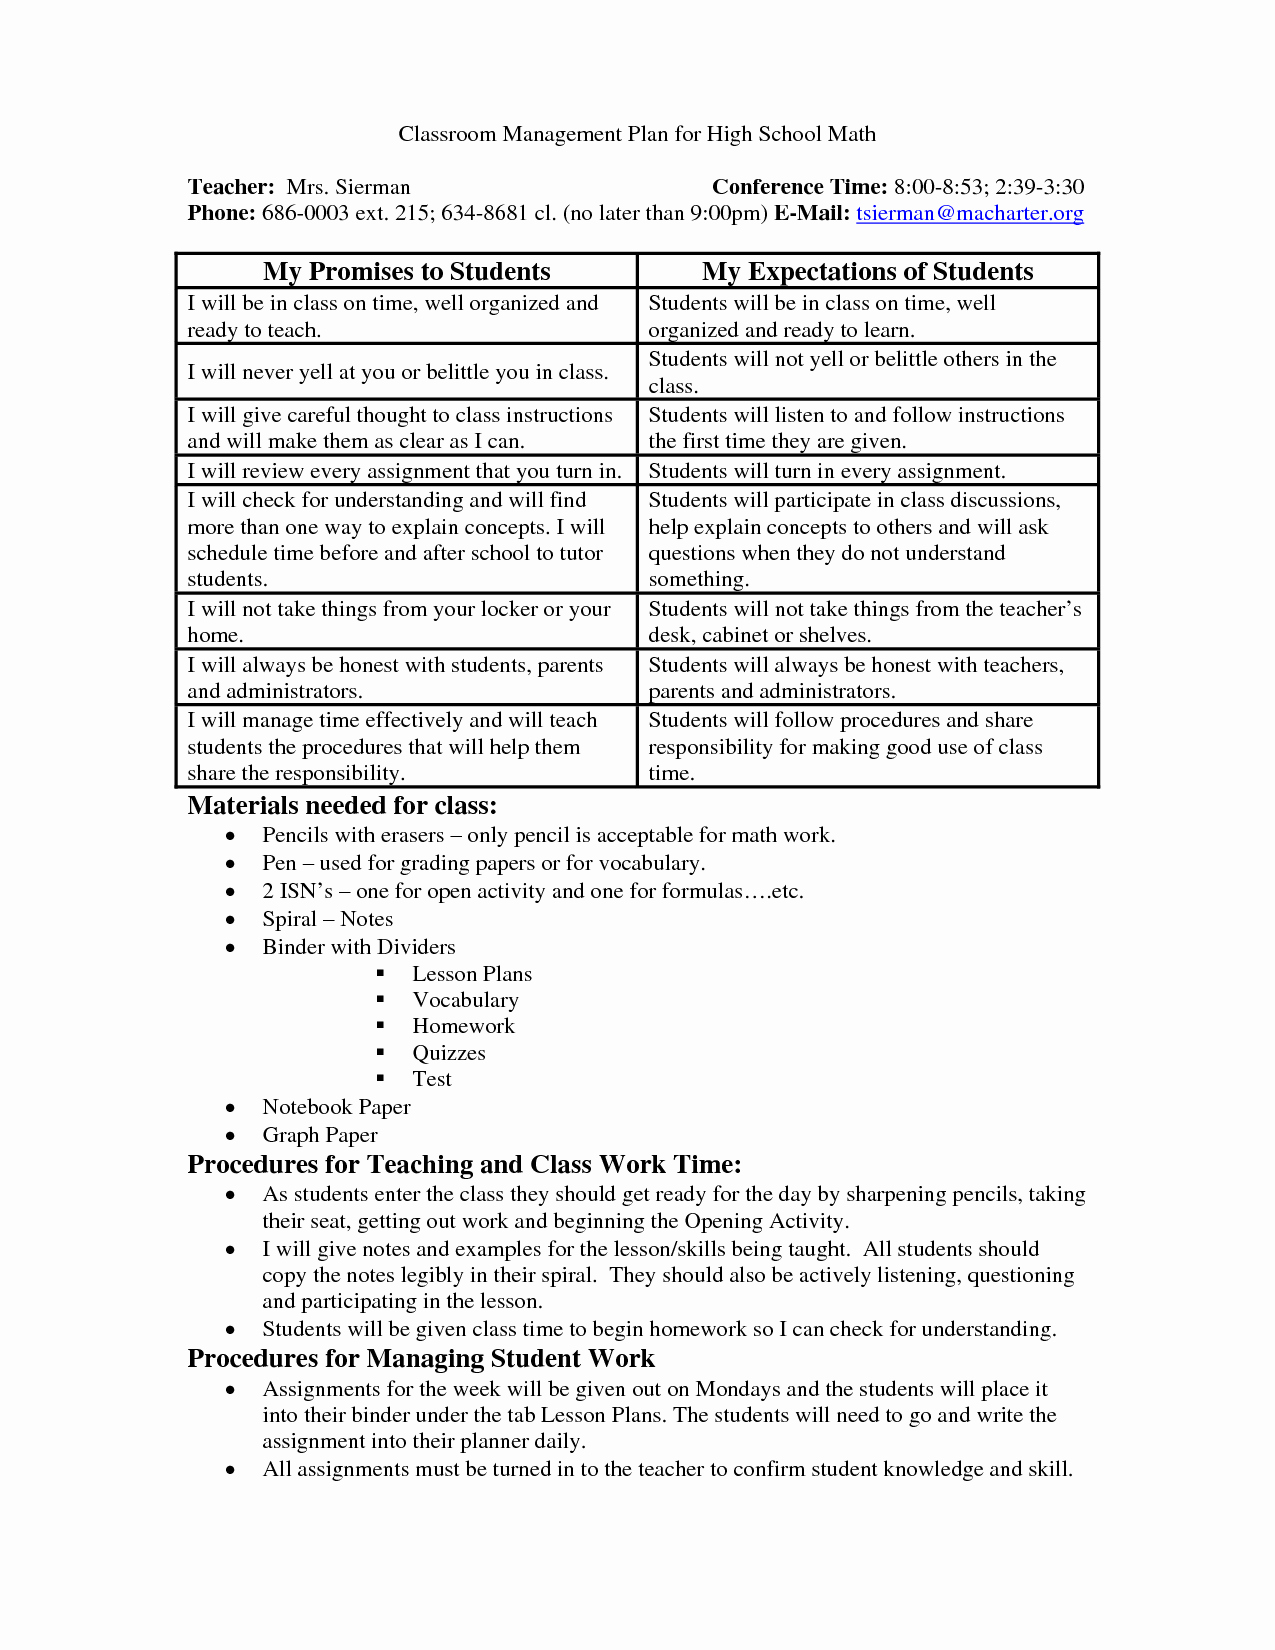 Classroom Management Plan Template Elementary Luxury School Wide Examples Discipline Plan Classroom